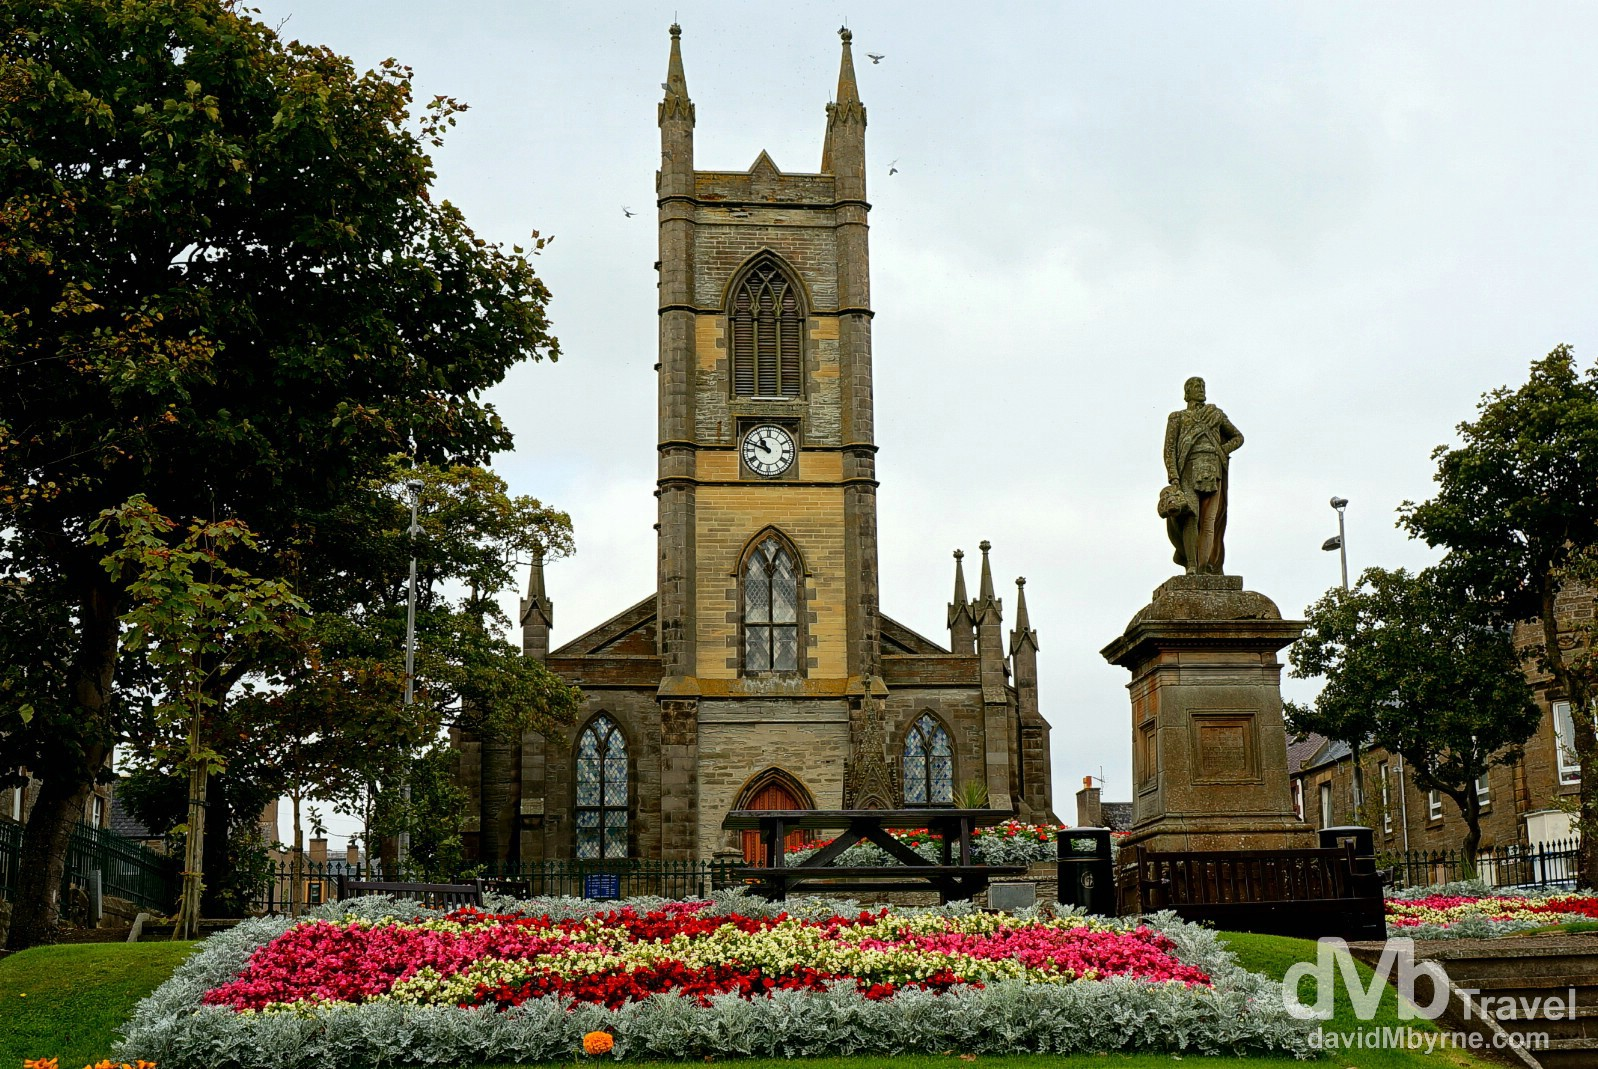 St. Peter's & St. Andrew's Church overlooking Sir John Square in Thurso, Caithness, Highland, Scotland. September 15, 2014.